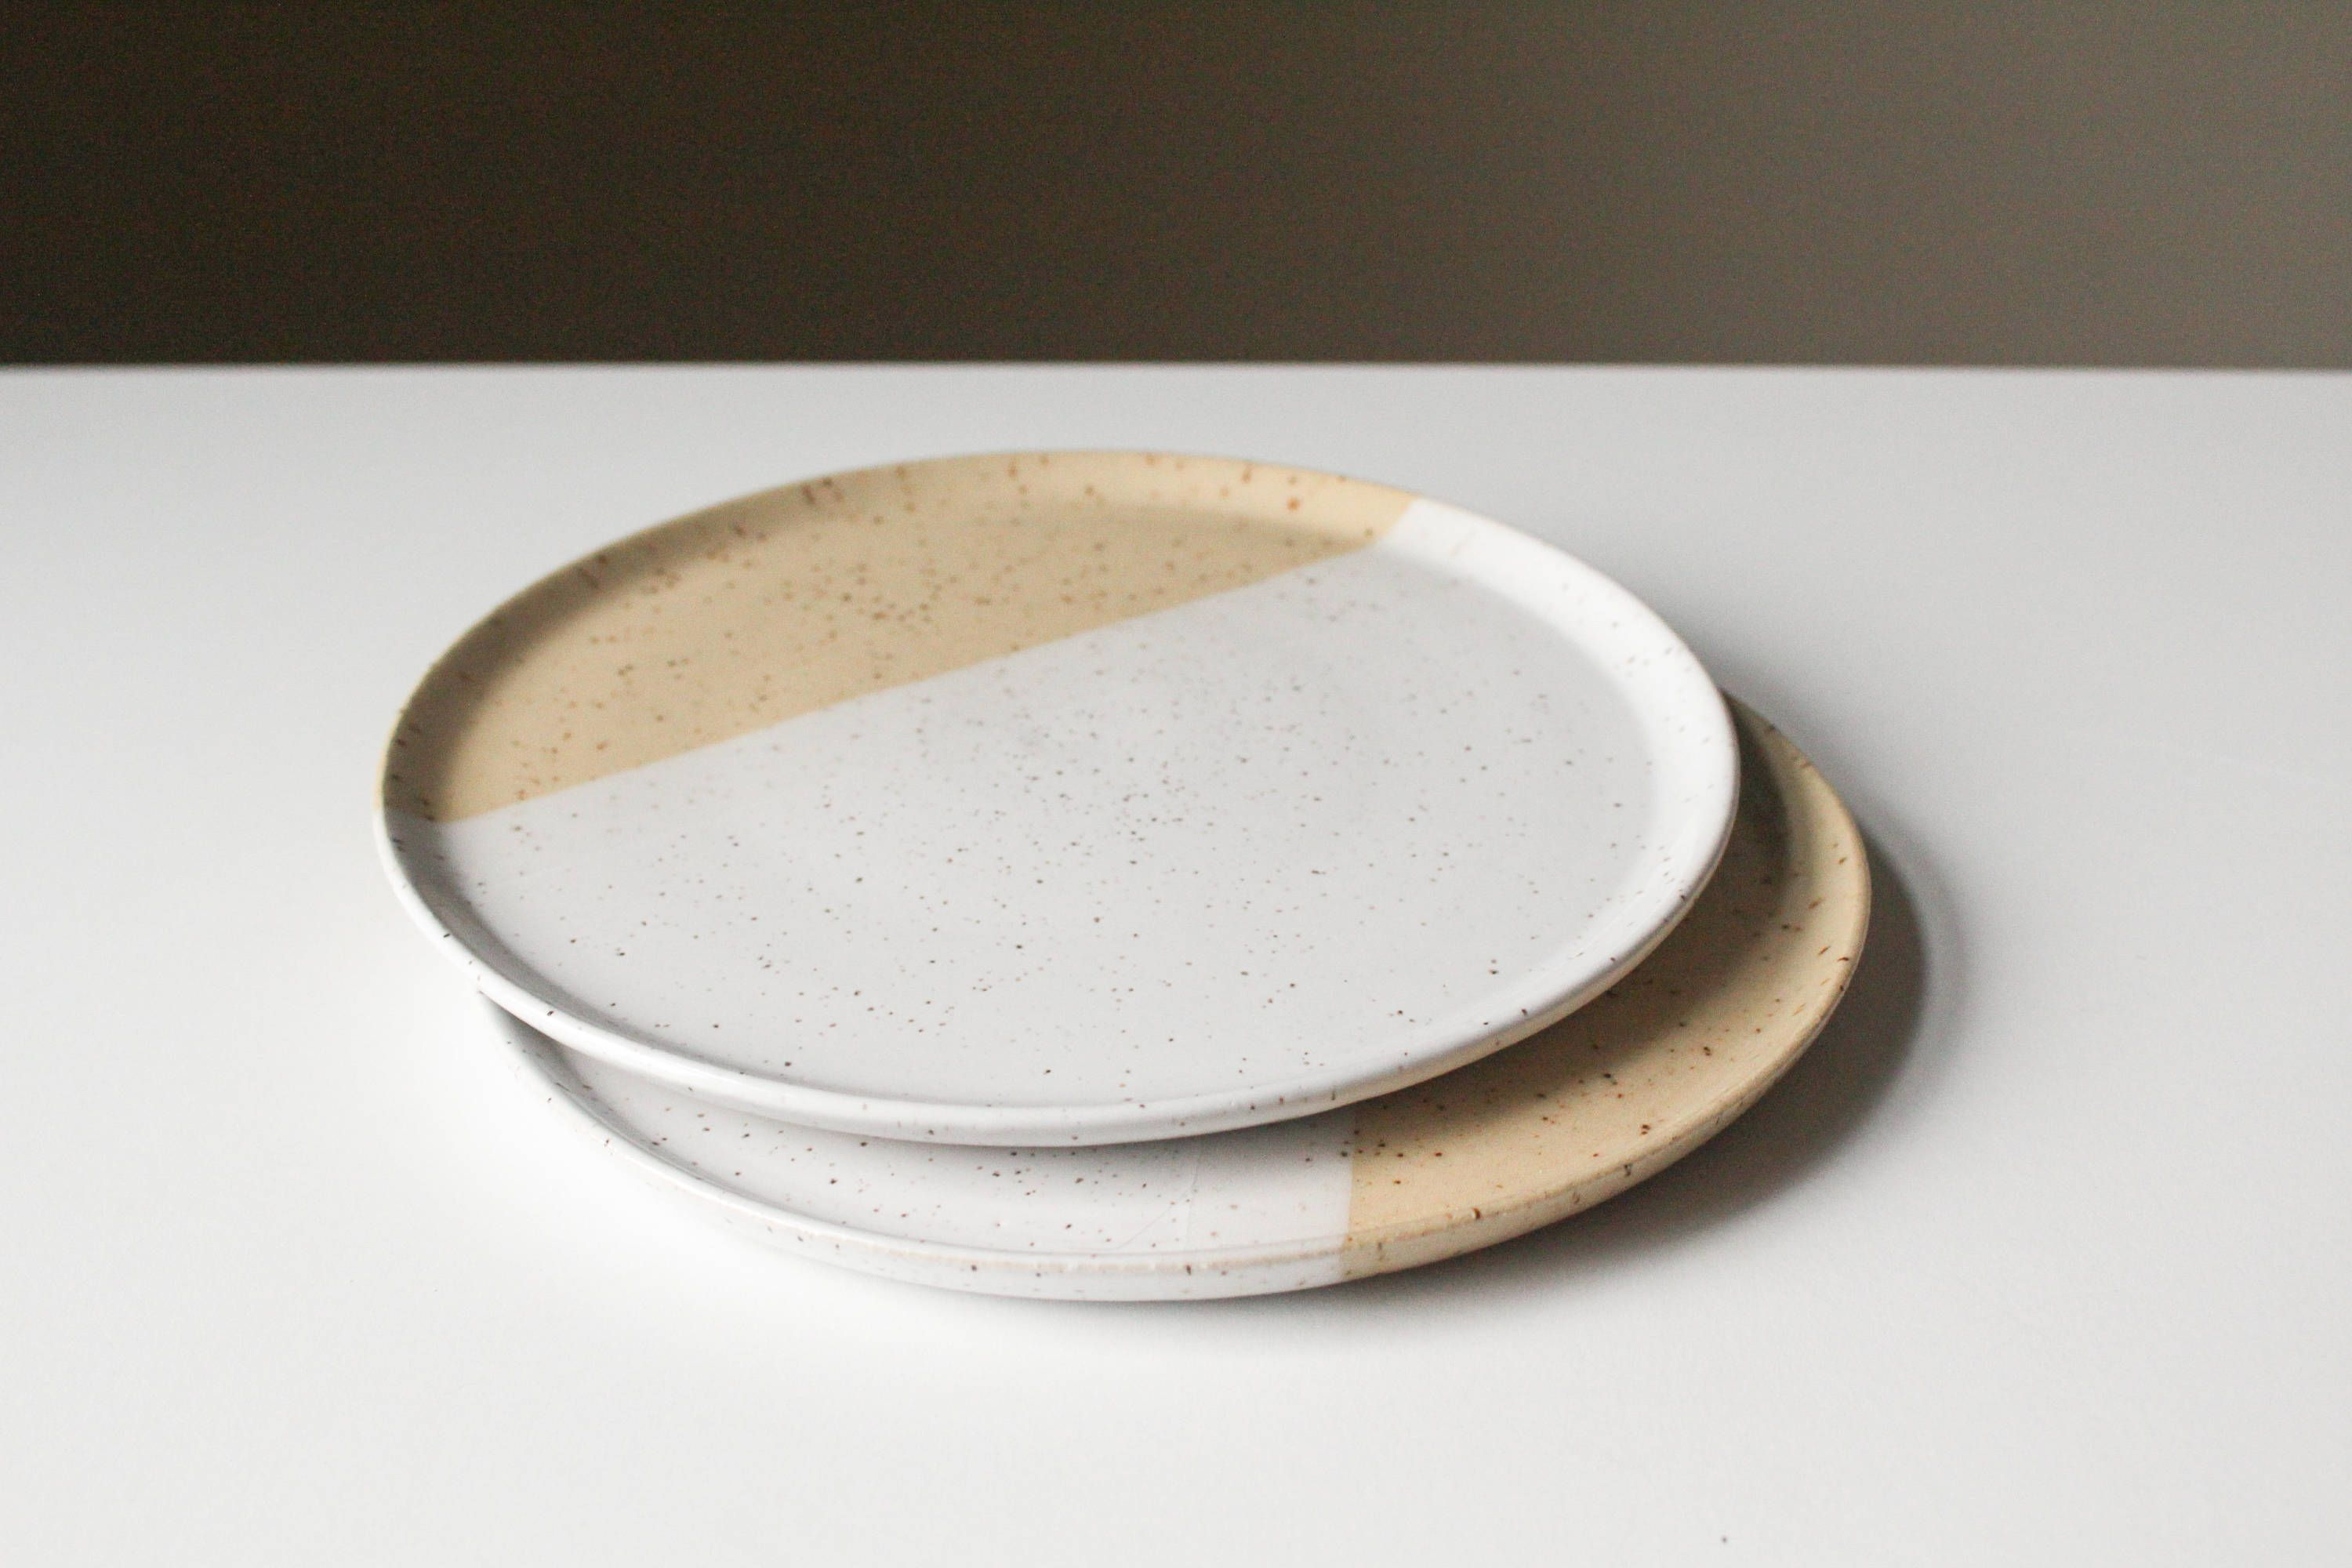 Speckled Ceramic Dinner Plates Set Of 2 Modern Pottery Etsy Ceramic Dishes Pottery Ceramics